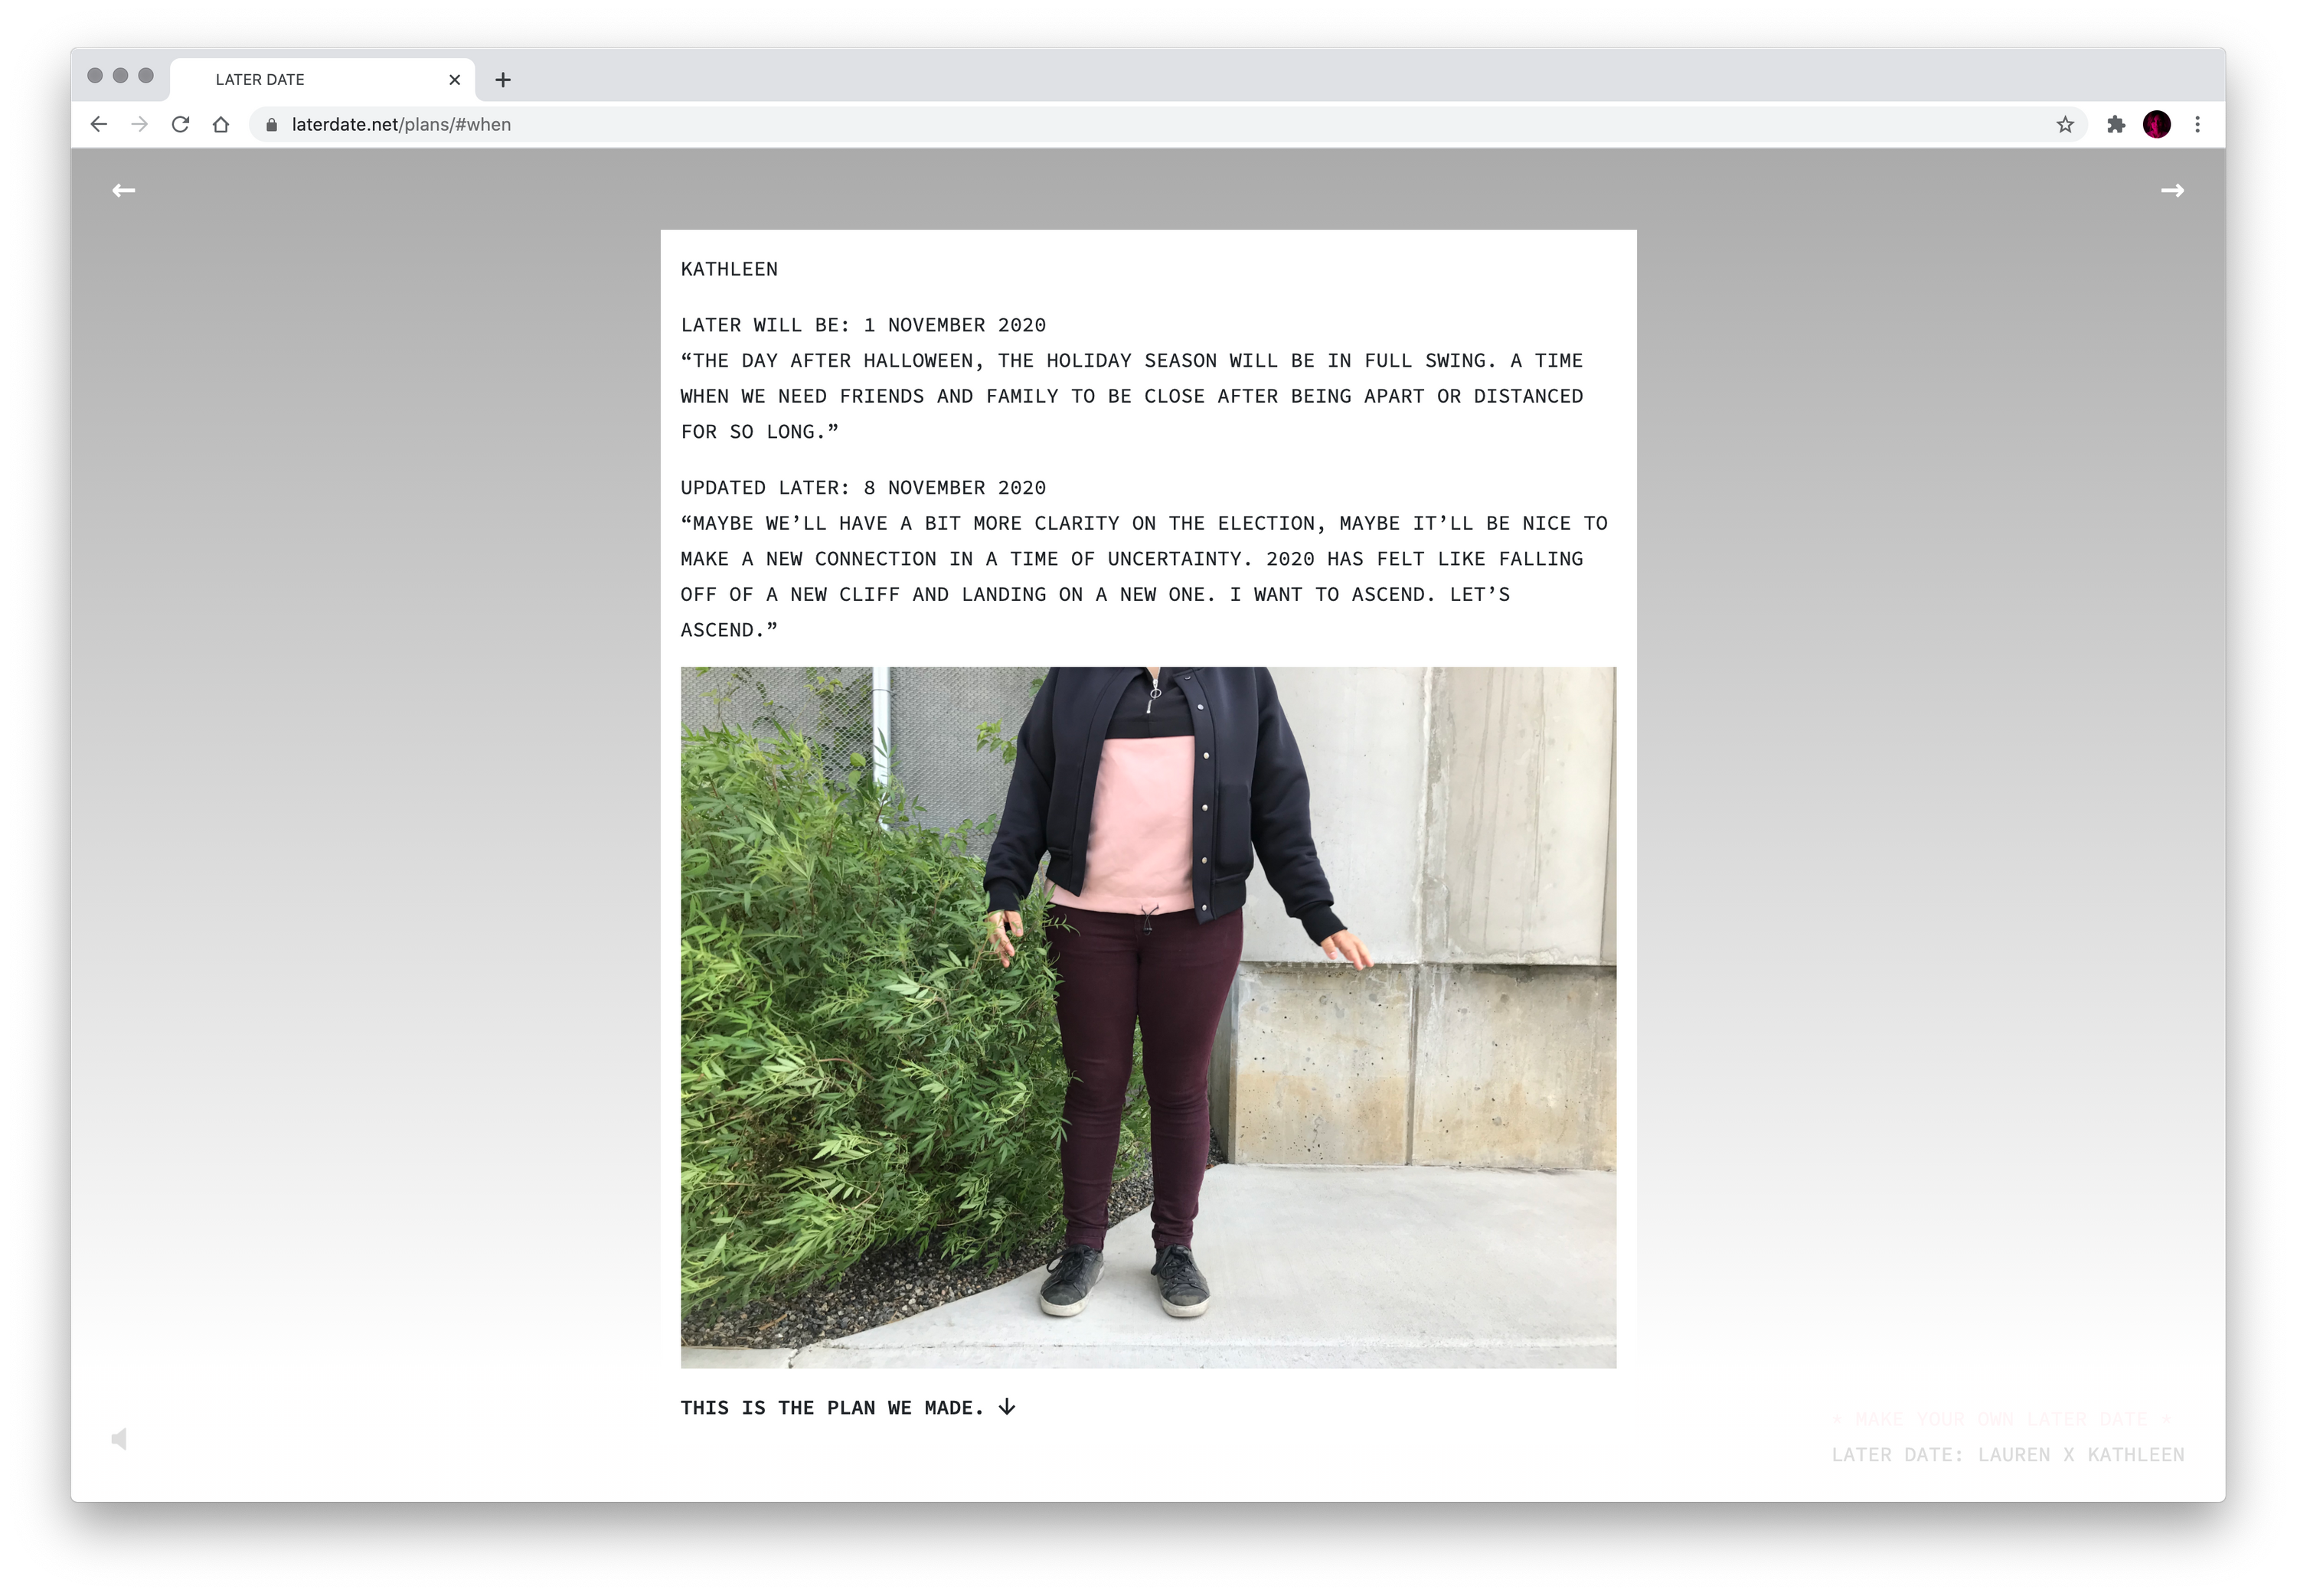 """In a screenshot of a browser window, we see some text and the torso of a person wearing brown pants, a pink sweatshirt, and a black jacket. In the text, the person hypothesizes that """"later"""" will be November 1, 2020."""